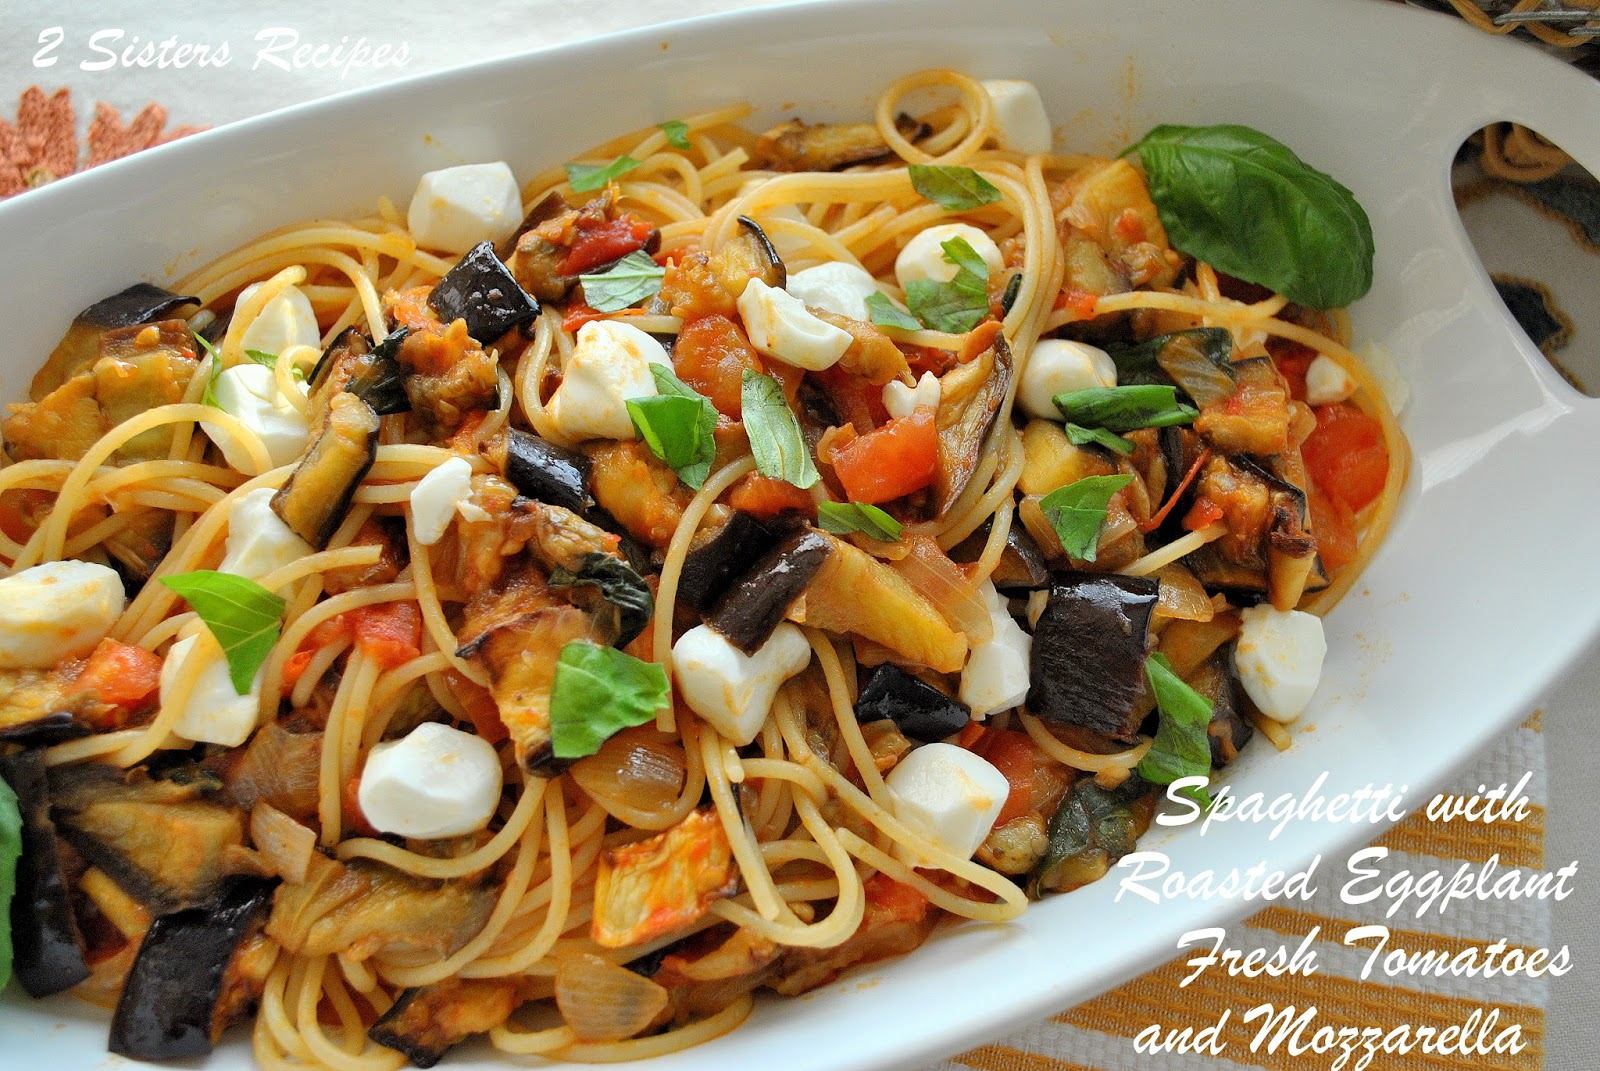 ... Liz: Spaghetti with Roasted Eggplant, Fresh Tomatoes and Mozzarella